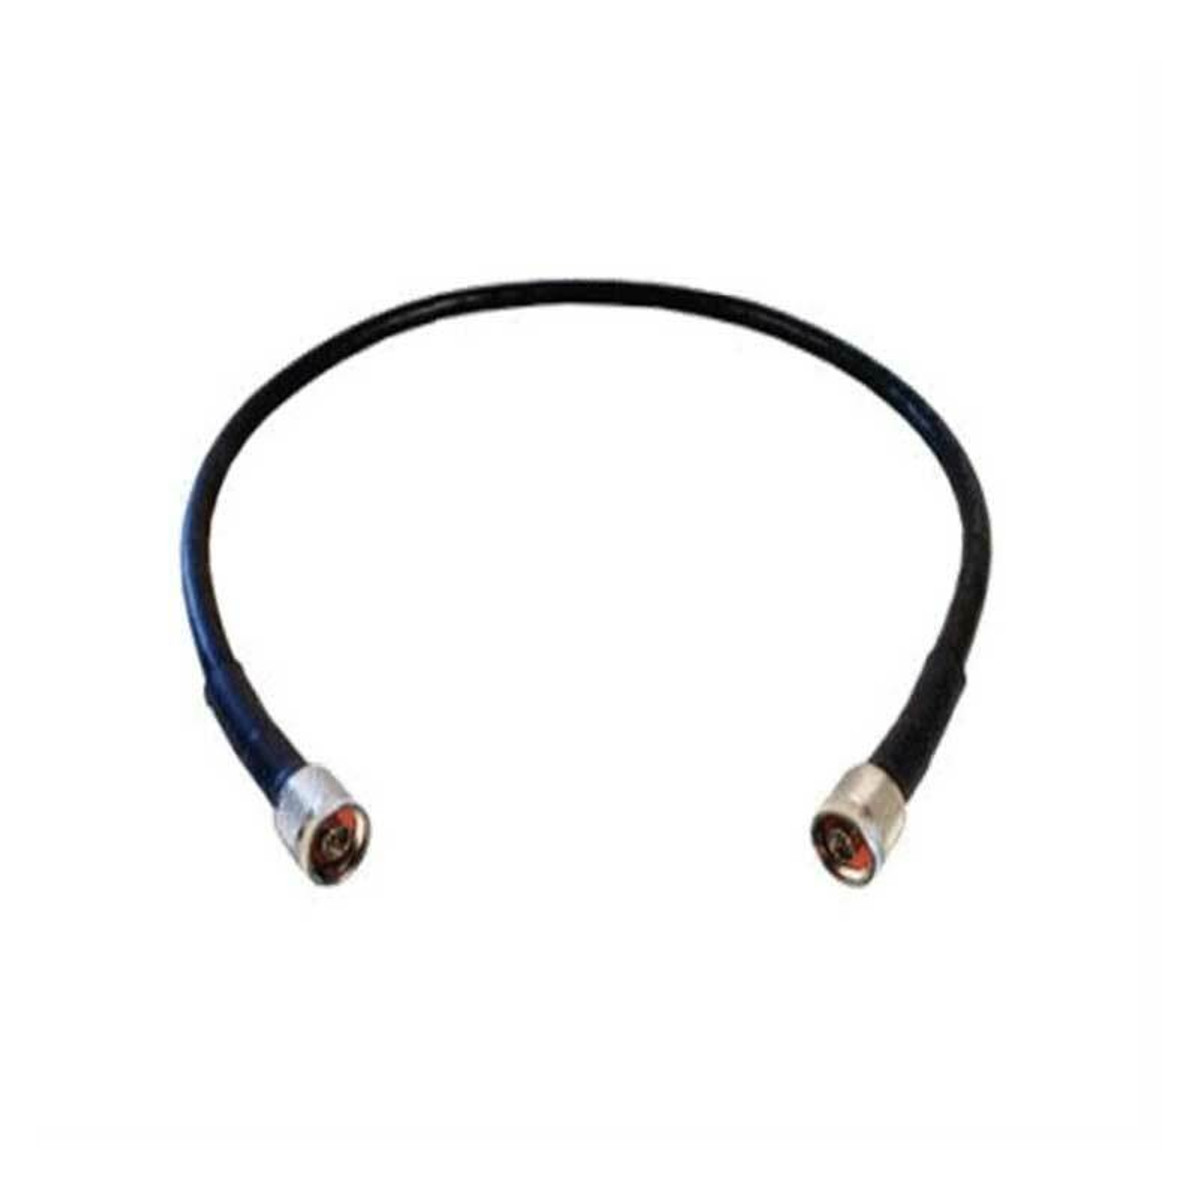 Wilson Electronics weBoost Wilson 952302 Wilson 400 N-Male to N-Male or 2 ft Black Cable